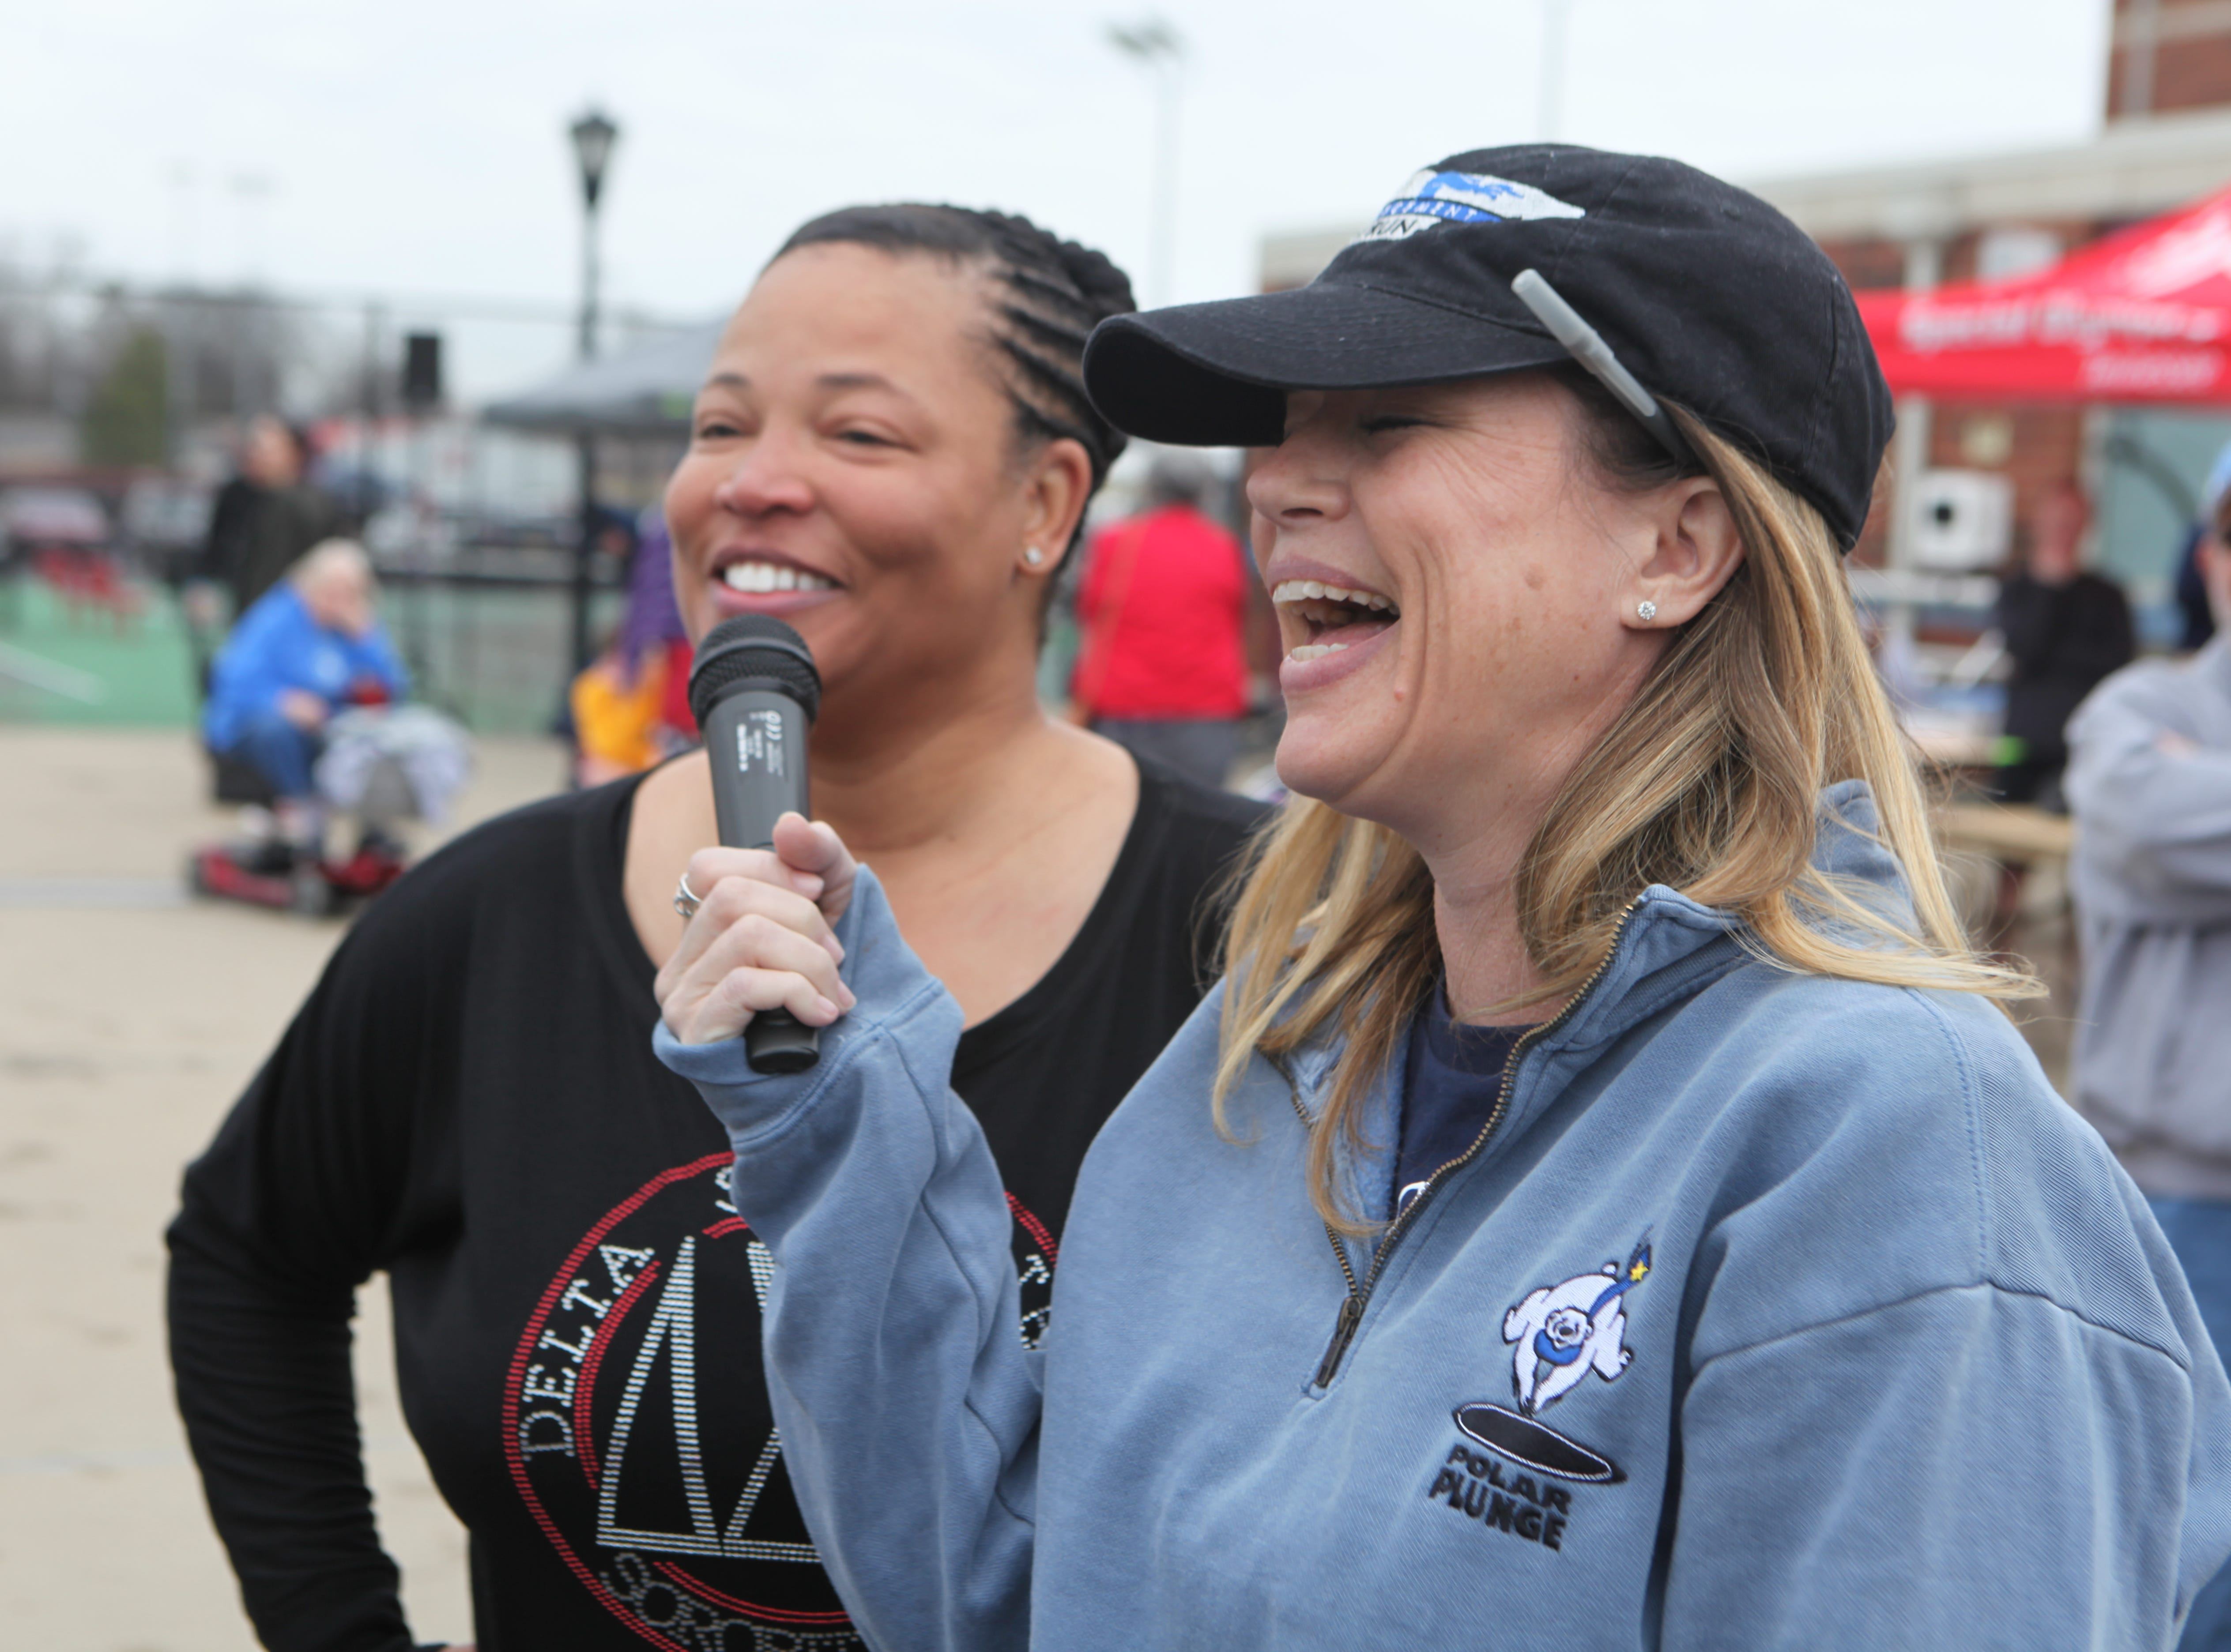 CPD Captain Liane Wilson (L) speaks with Amy Parker, VP of Marketing, Tennessee Special Oluympics (R) during the Special Olympics Polar Plunge at APSU on Saturday, Feb. 1, 2019. More than $10,000 was raised at this year's event.